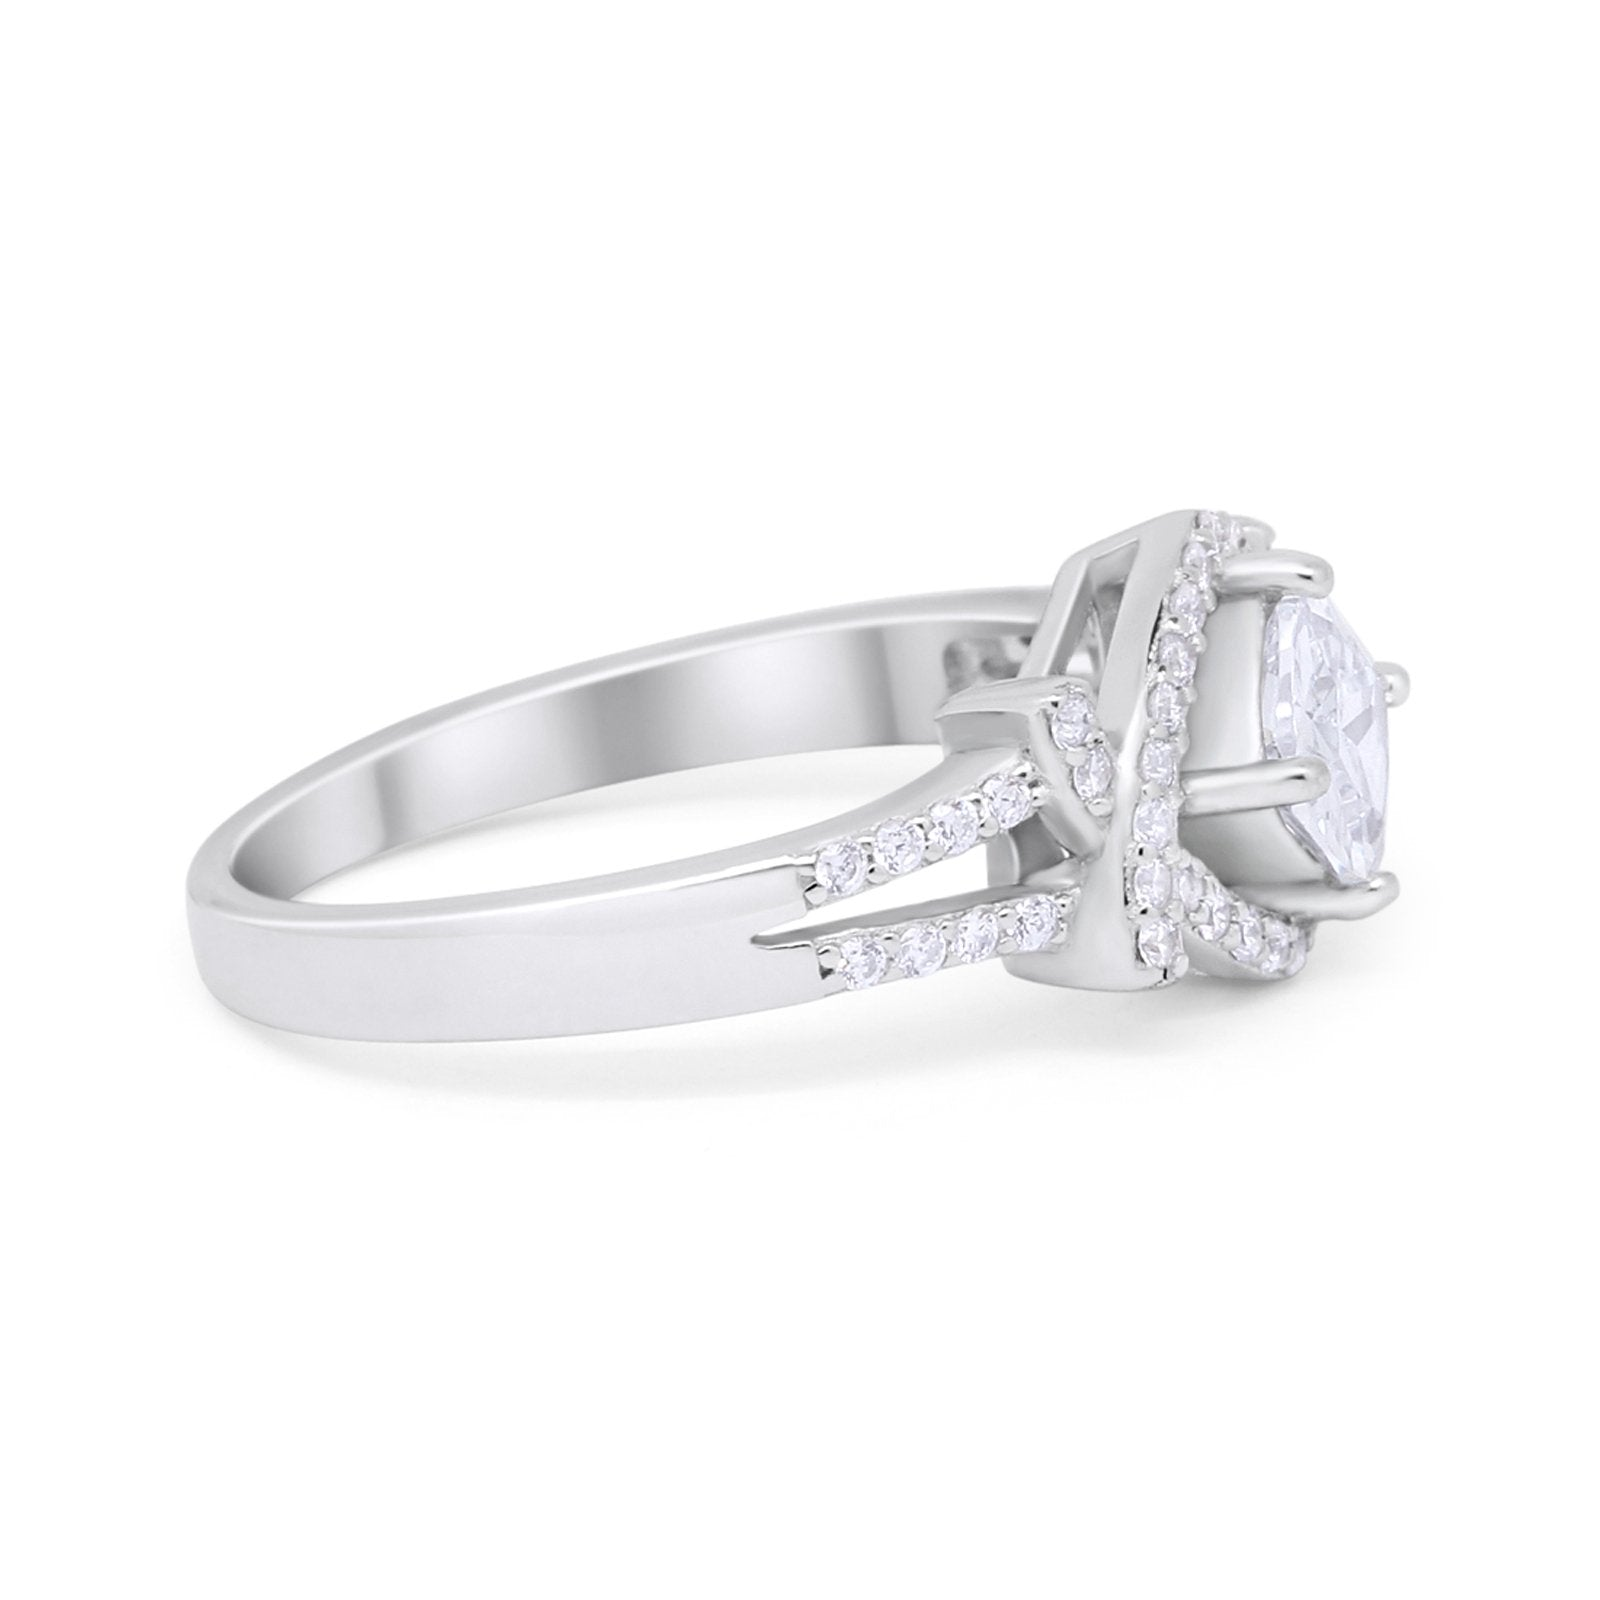 New Design Cushion Cut Wedding Ring Simulated CZ 925 Sterling Silver